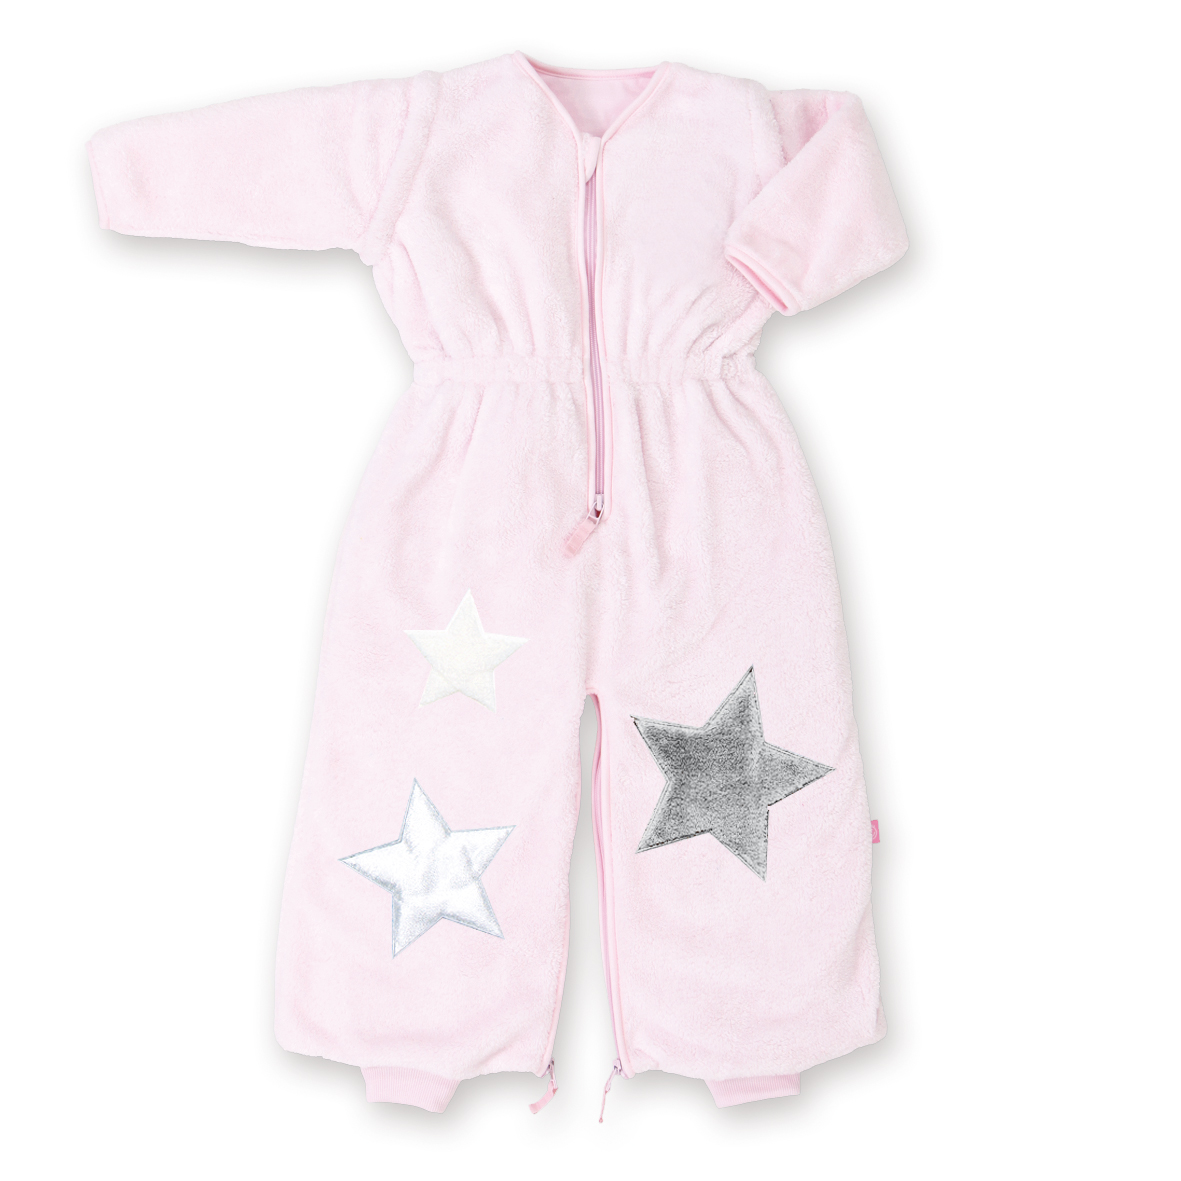 2in1 Schlafsack Stary Softy cristal rosa 6-24 m